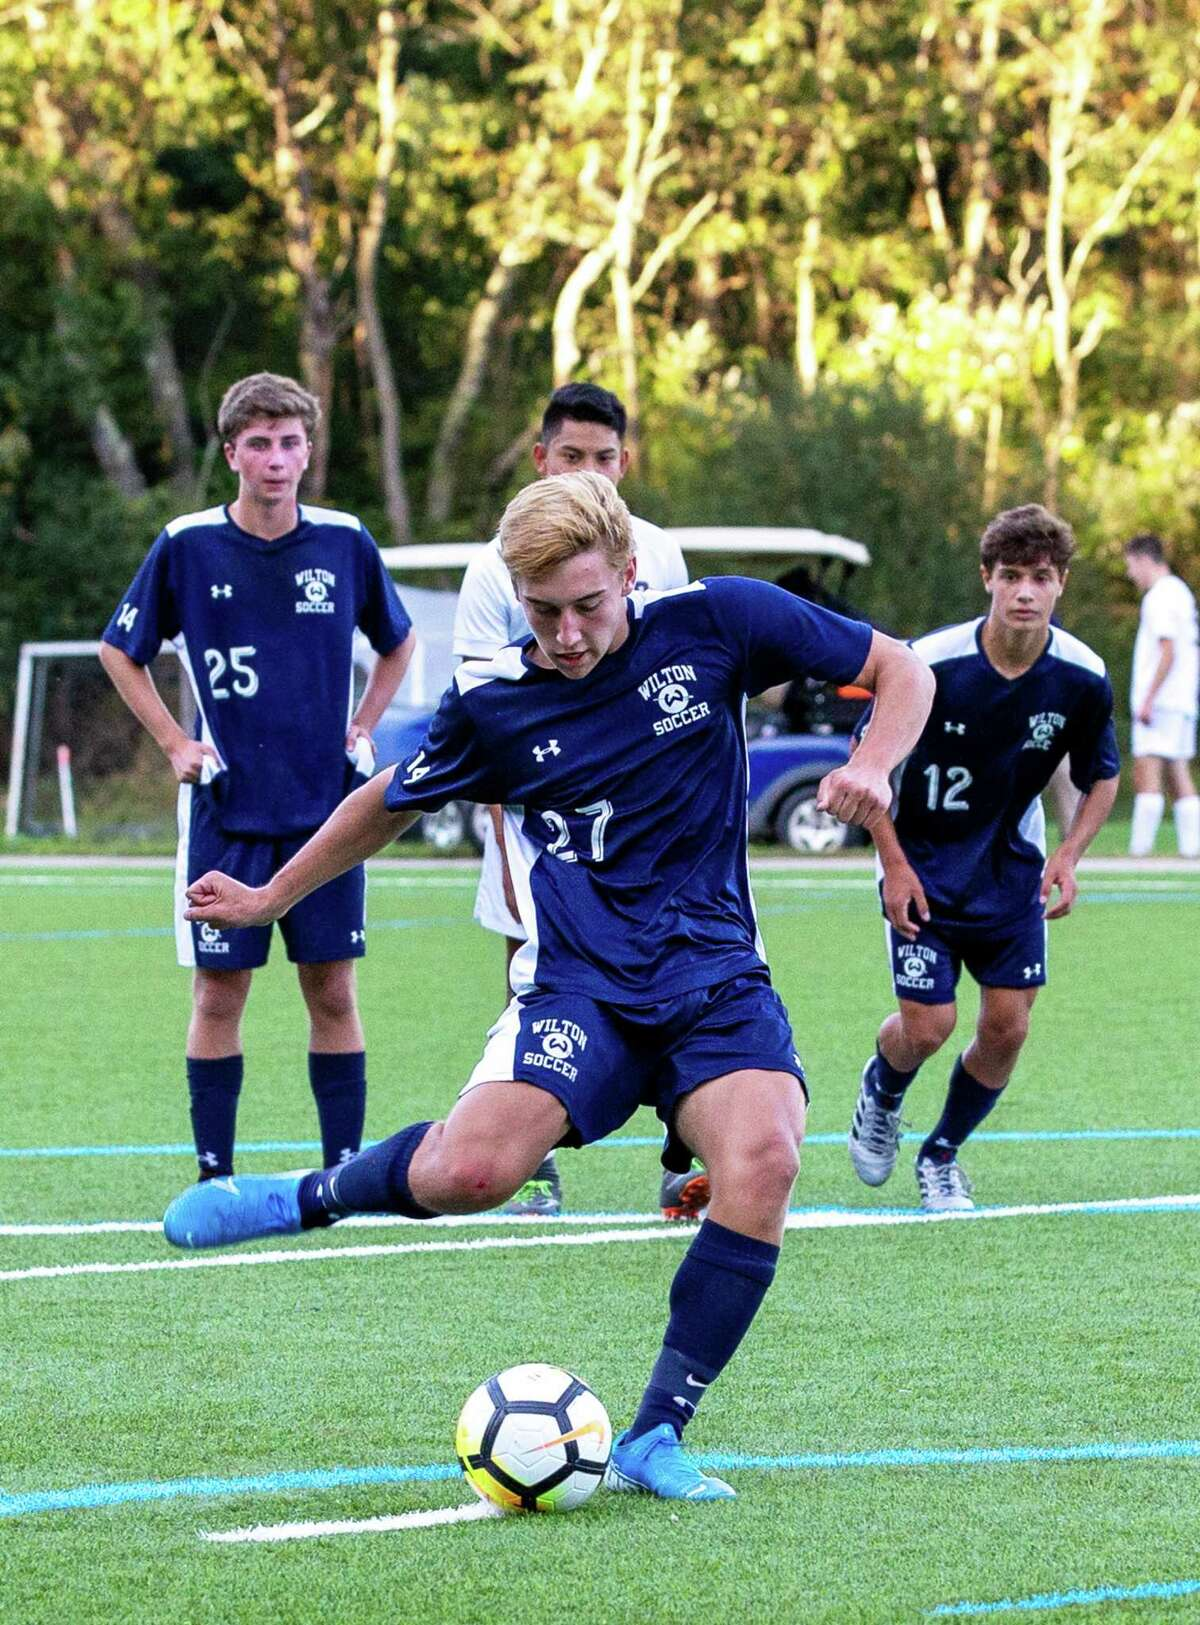 Will Hughes converts a penalty kick during Wilton's 6-1 win over St. Joseph.